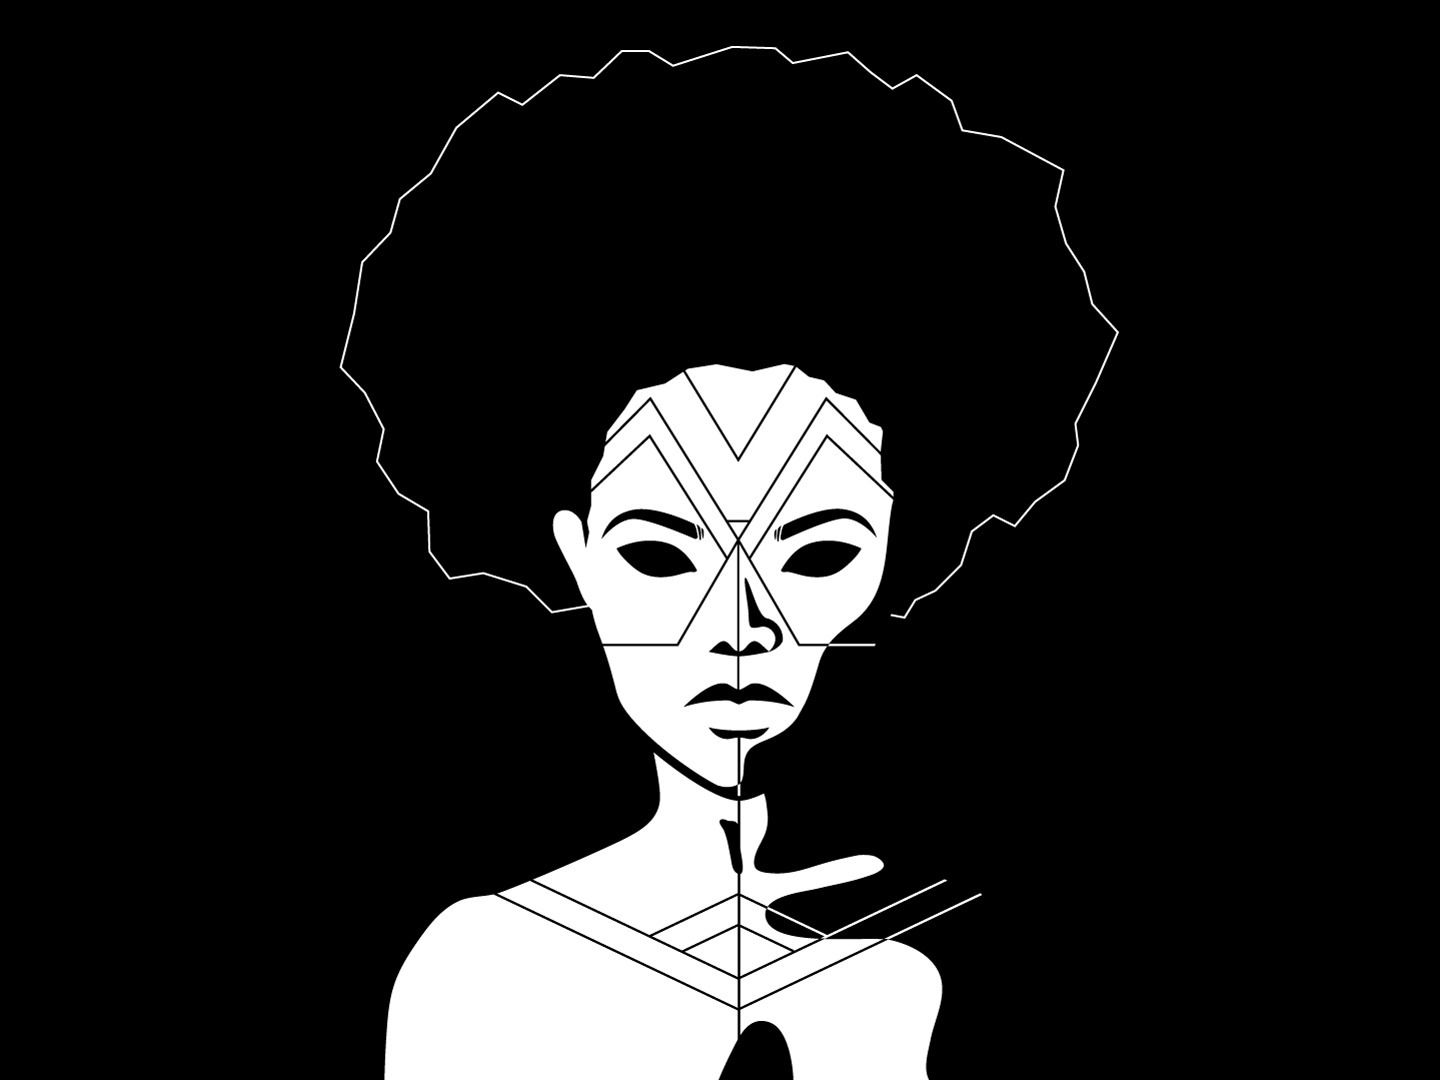 Face painting 1 illustration vector graphic black white african tribal hair